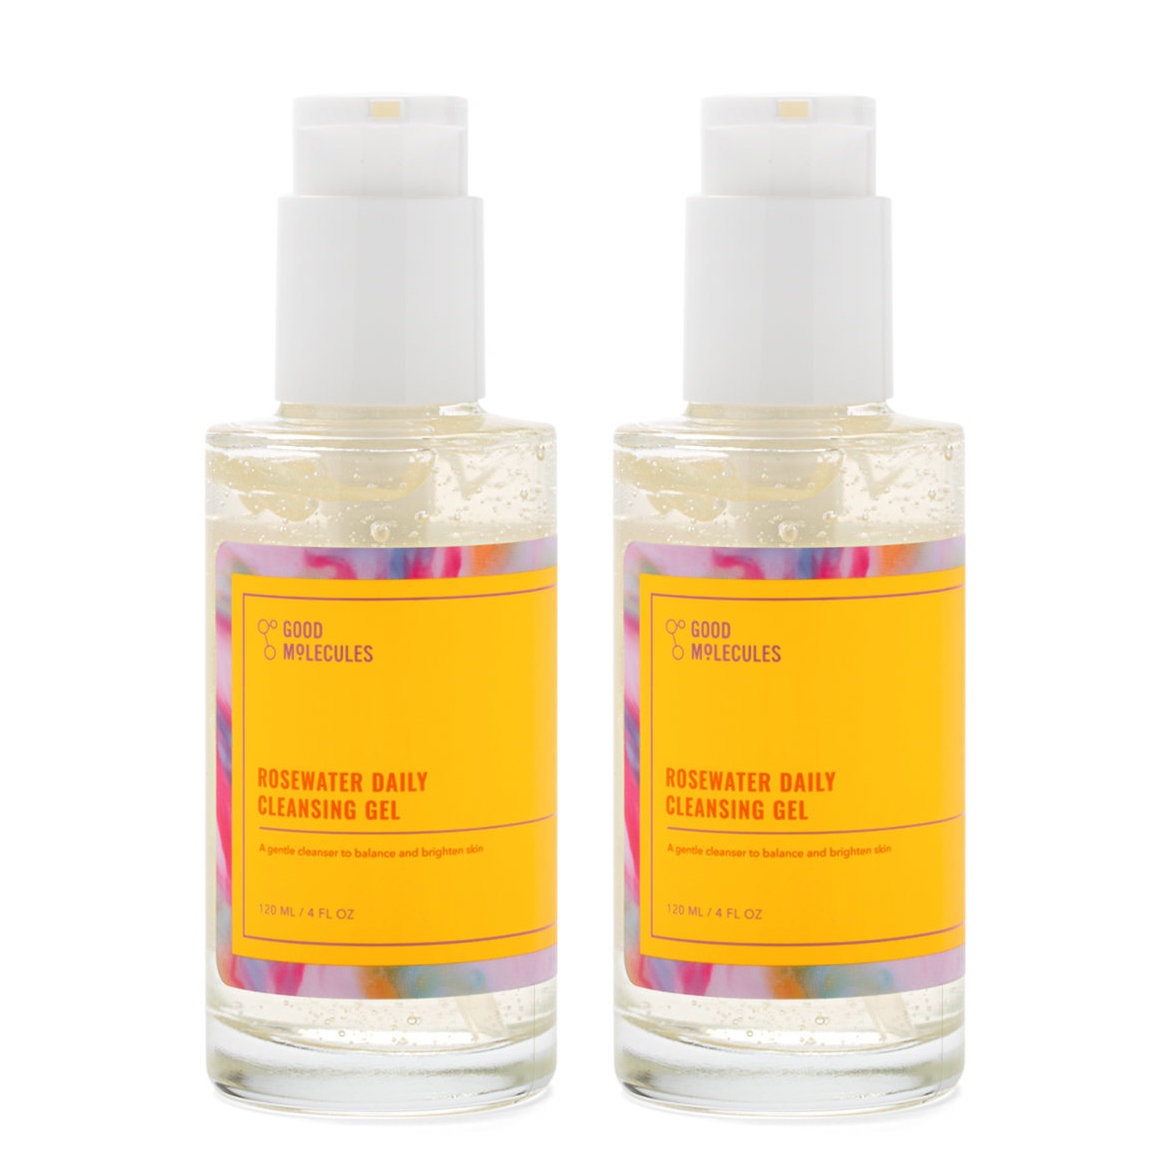 Good Molecules Rosewater Daily Cleansing Gel Duo alternative view 1 - product swatch.